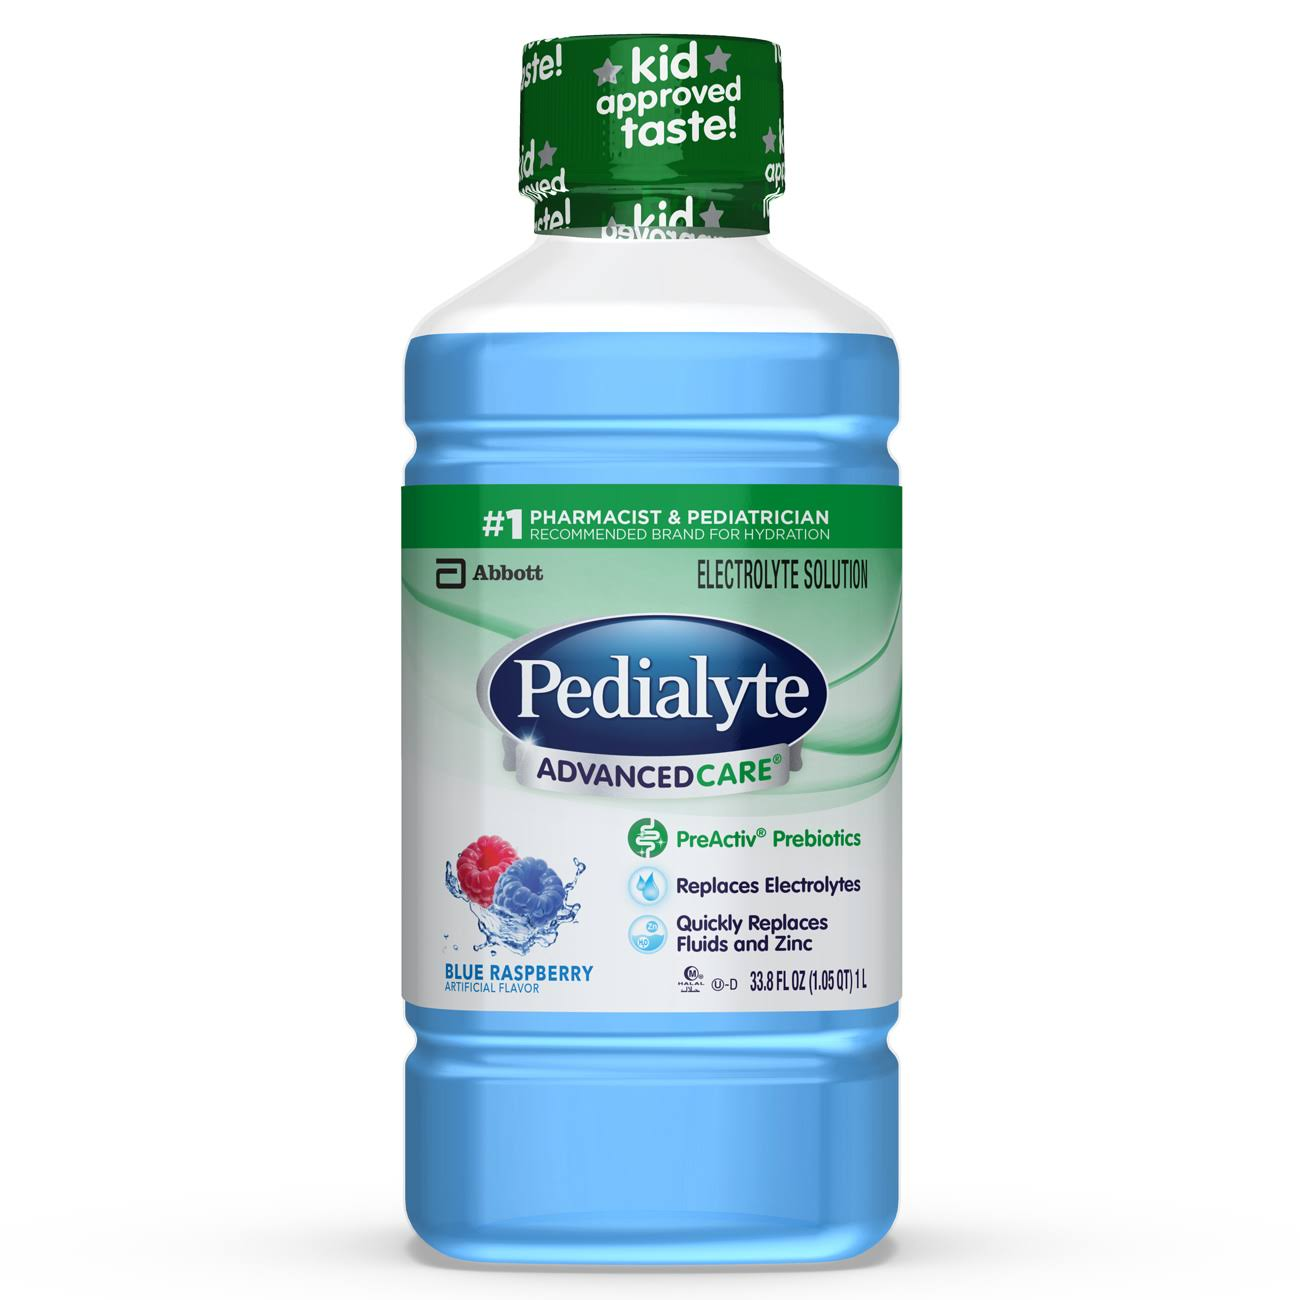 Pedialyte Advance Care Oral Electrolyte Solution - Blue Raspberry, 1L